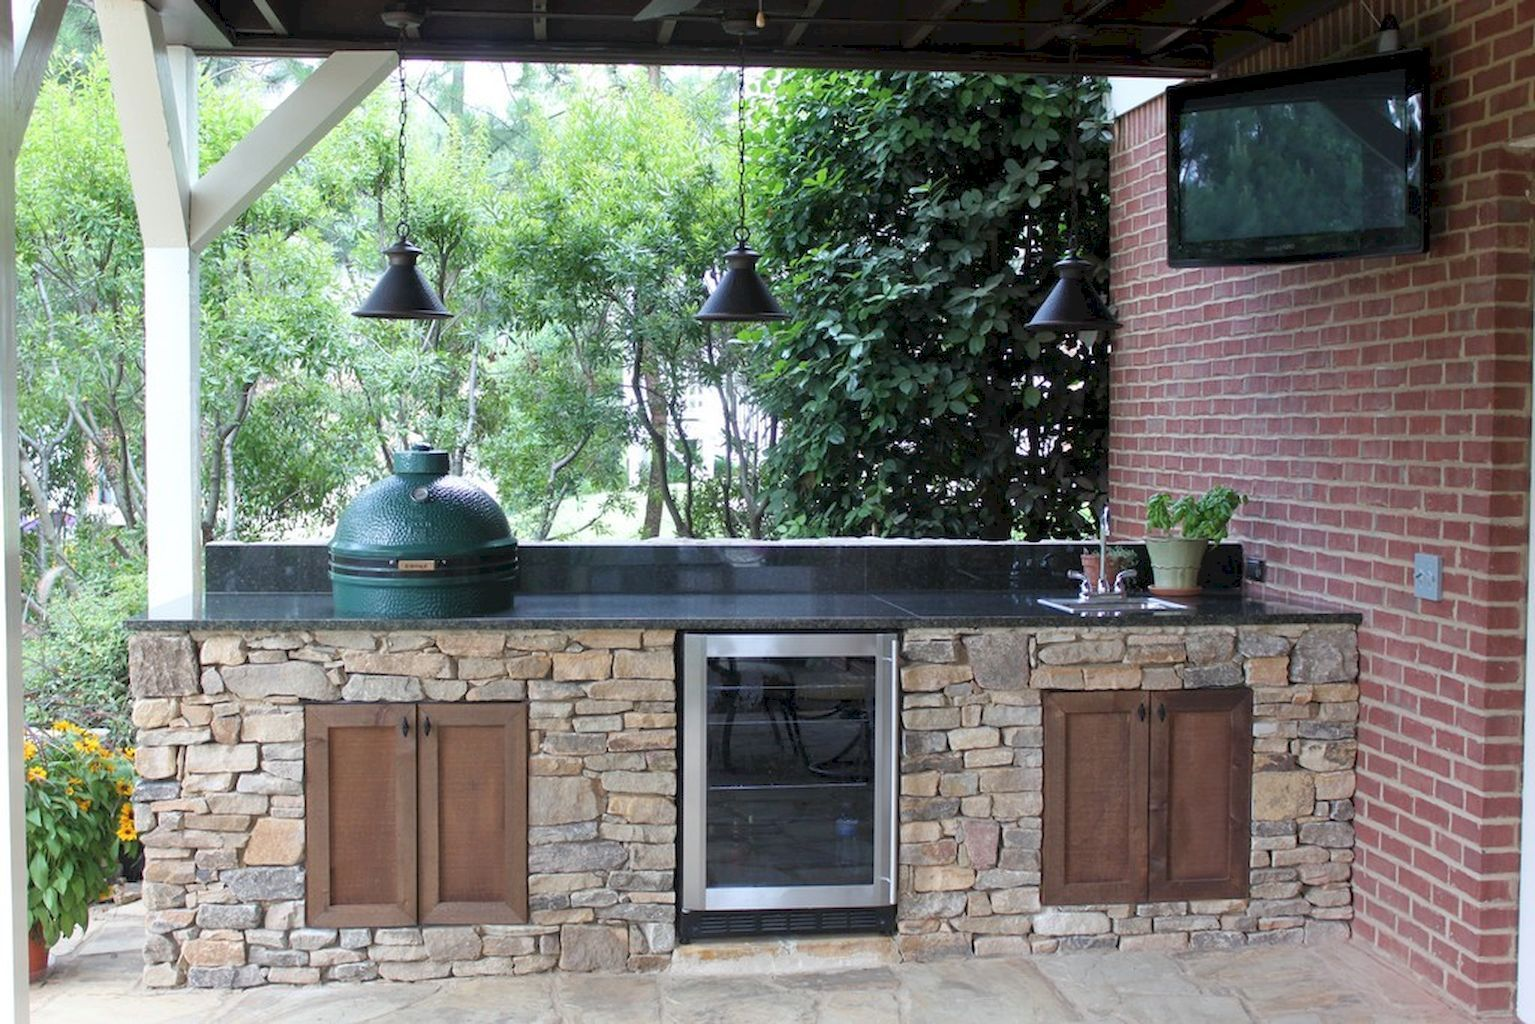 60 smart ideas for outdoor kitchens 28 in 2019 pools pinterest rh in pinterest com